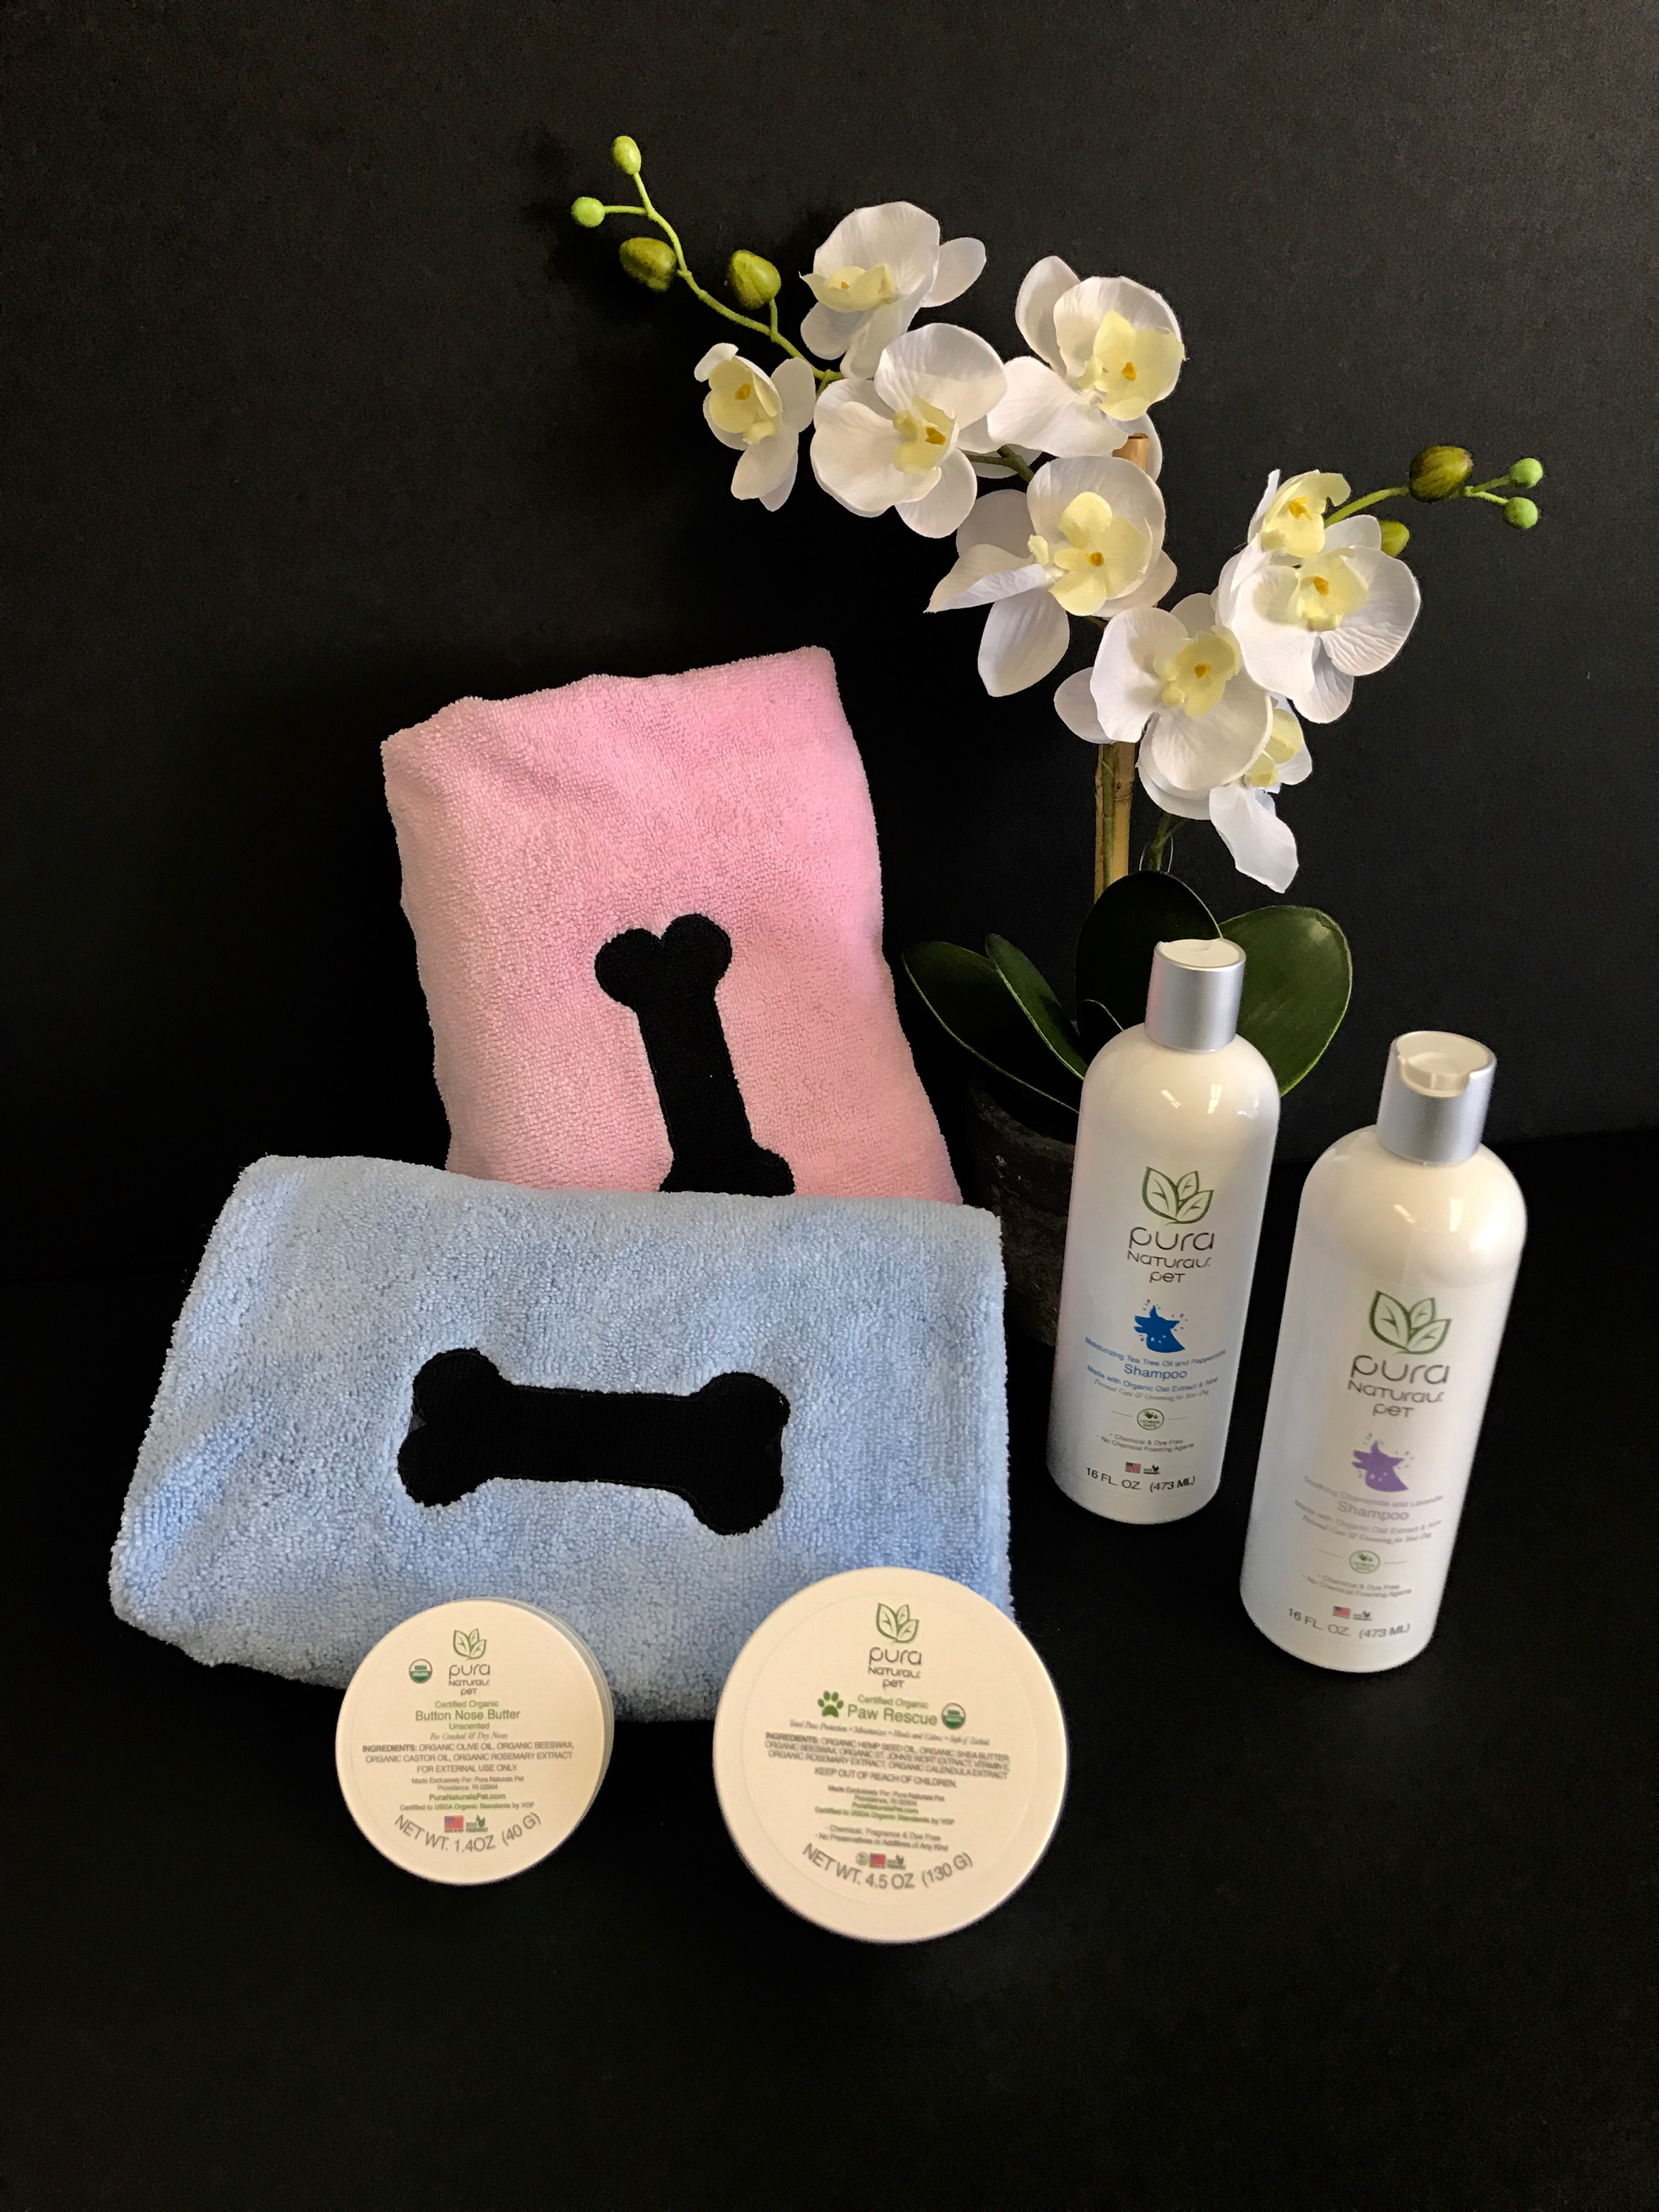 Spa Day! - Treat your dog to a nice spa day using only but the best products!